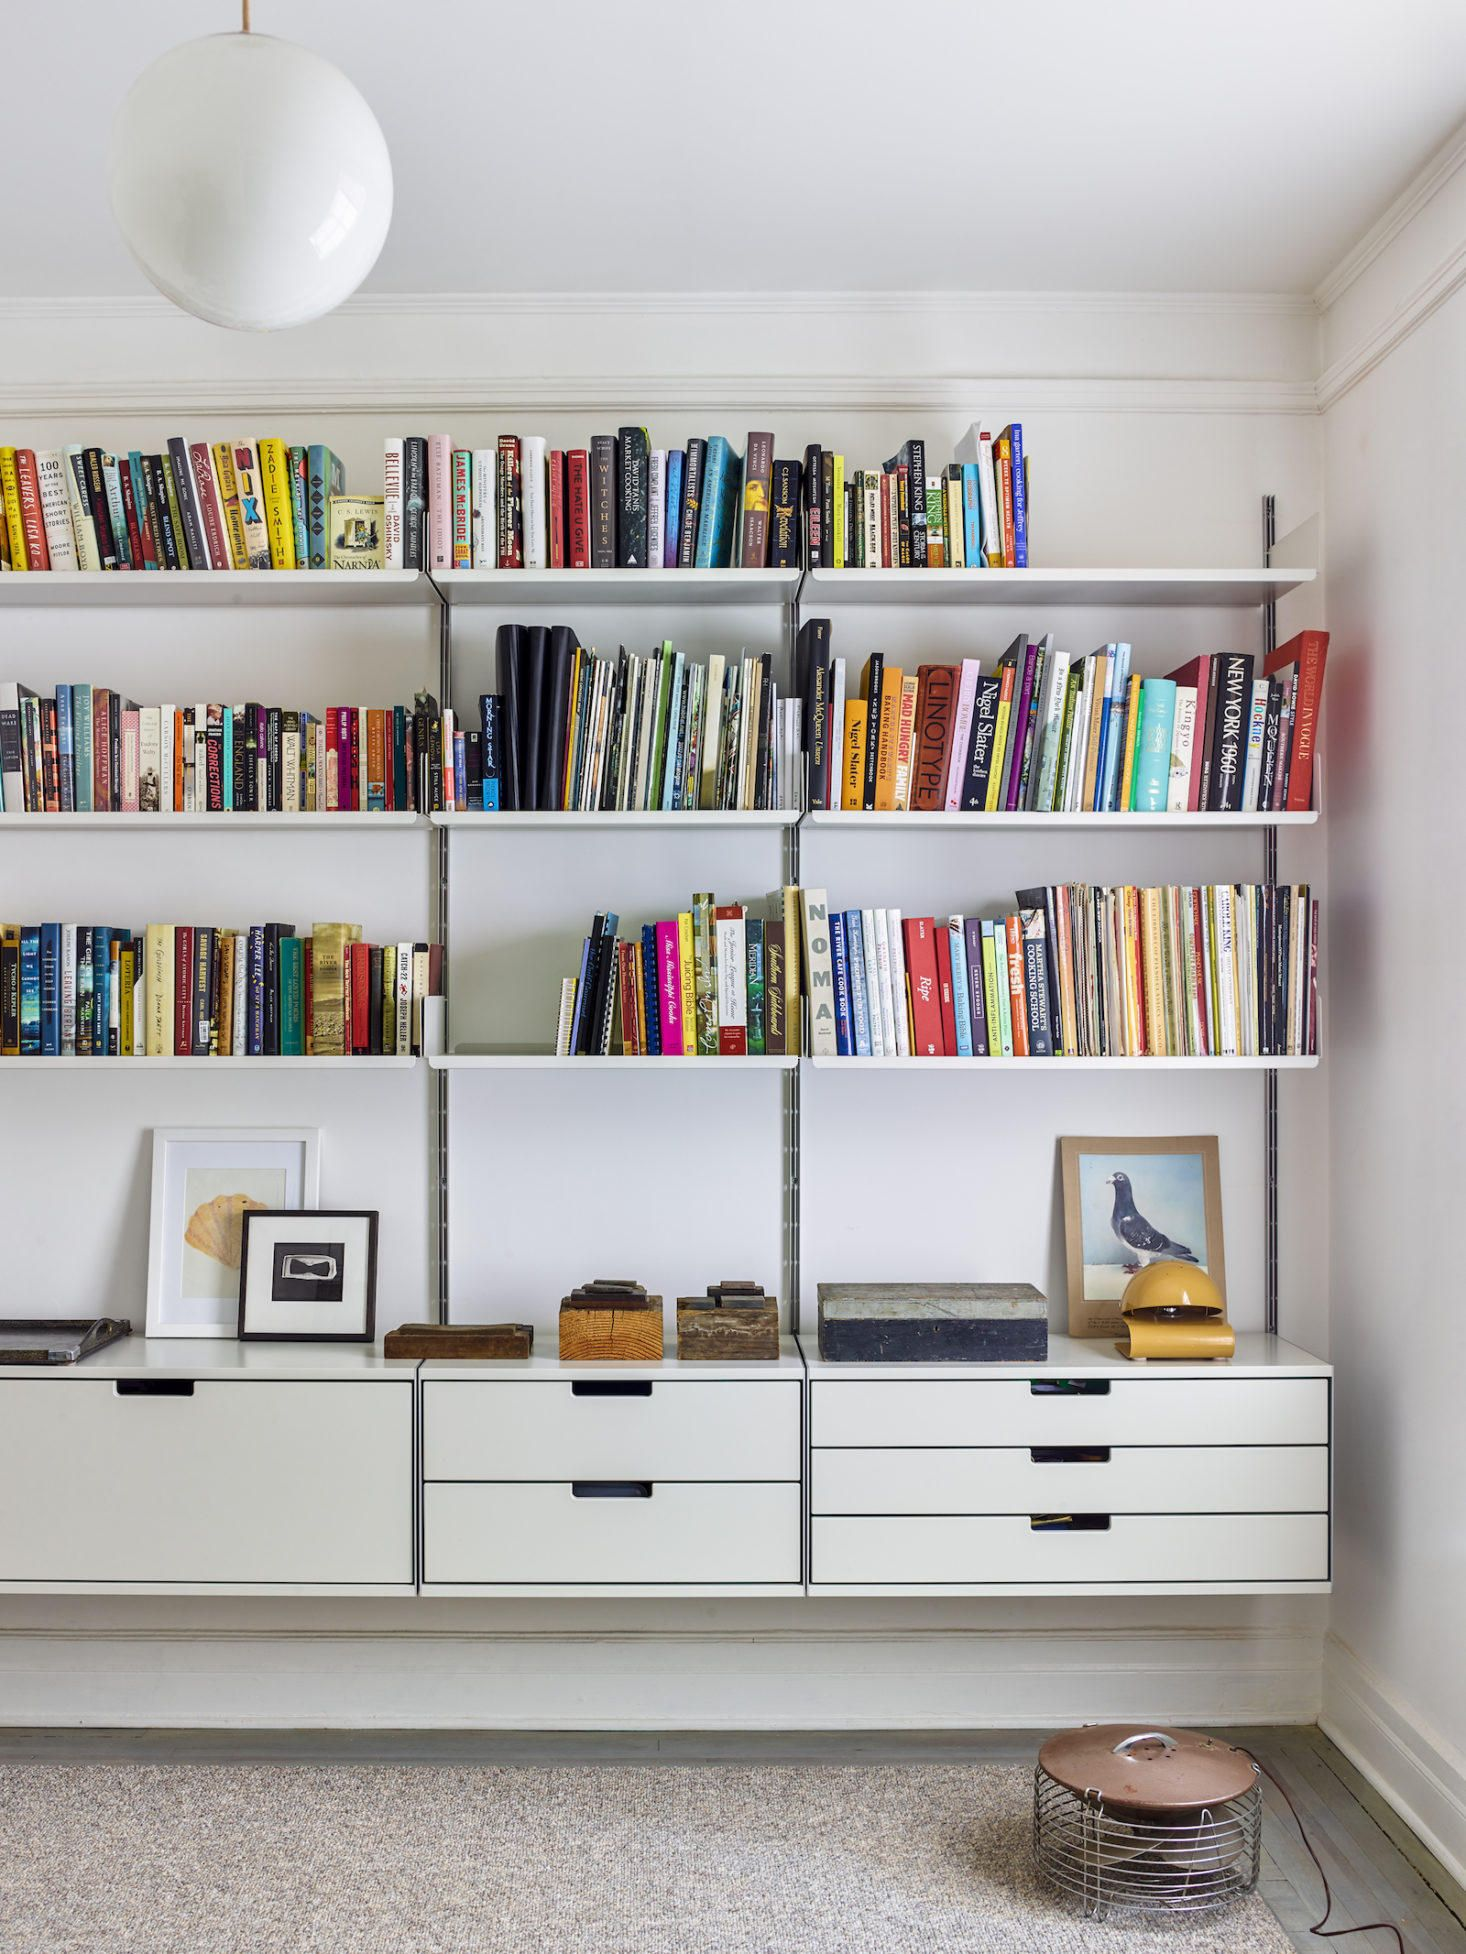 Vitsoe Shelving Unit With Bookshelves Organizedhome Vitsoe Bookshelves Organization Storage Organizationidea Apartment Storage Modular Shelving Shelving